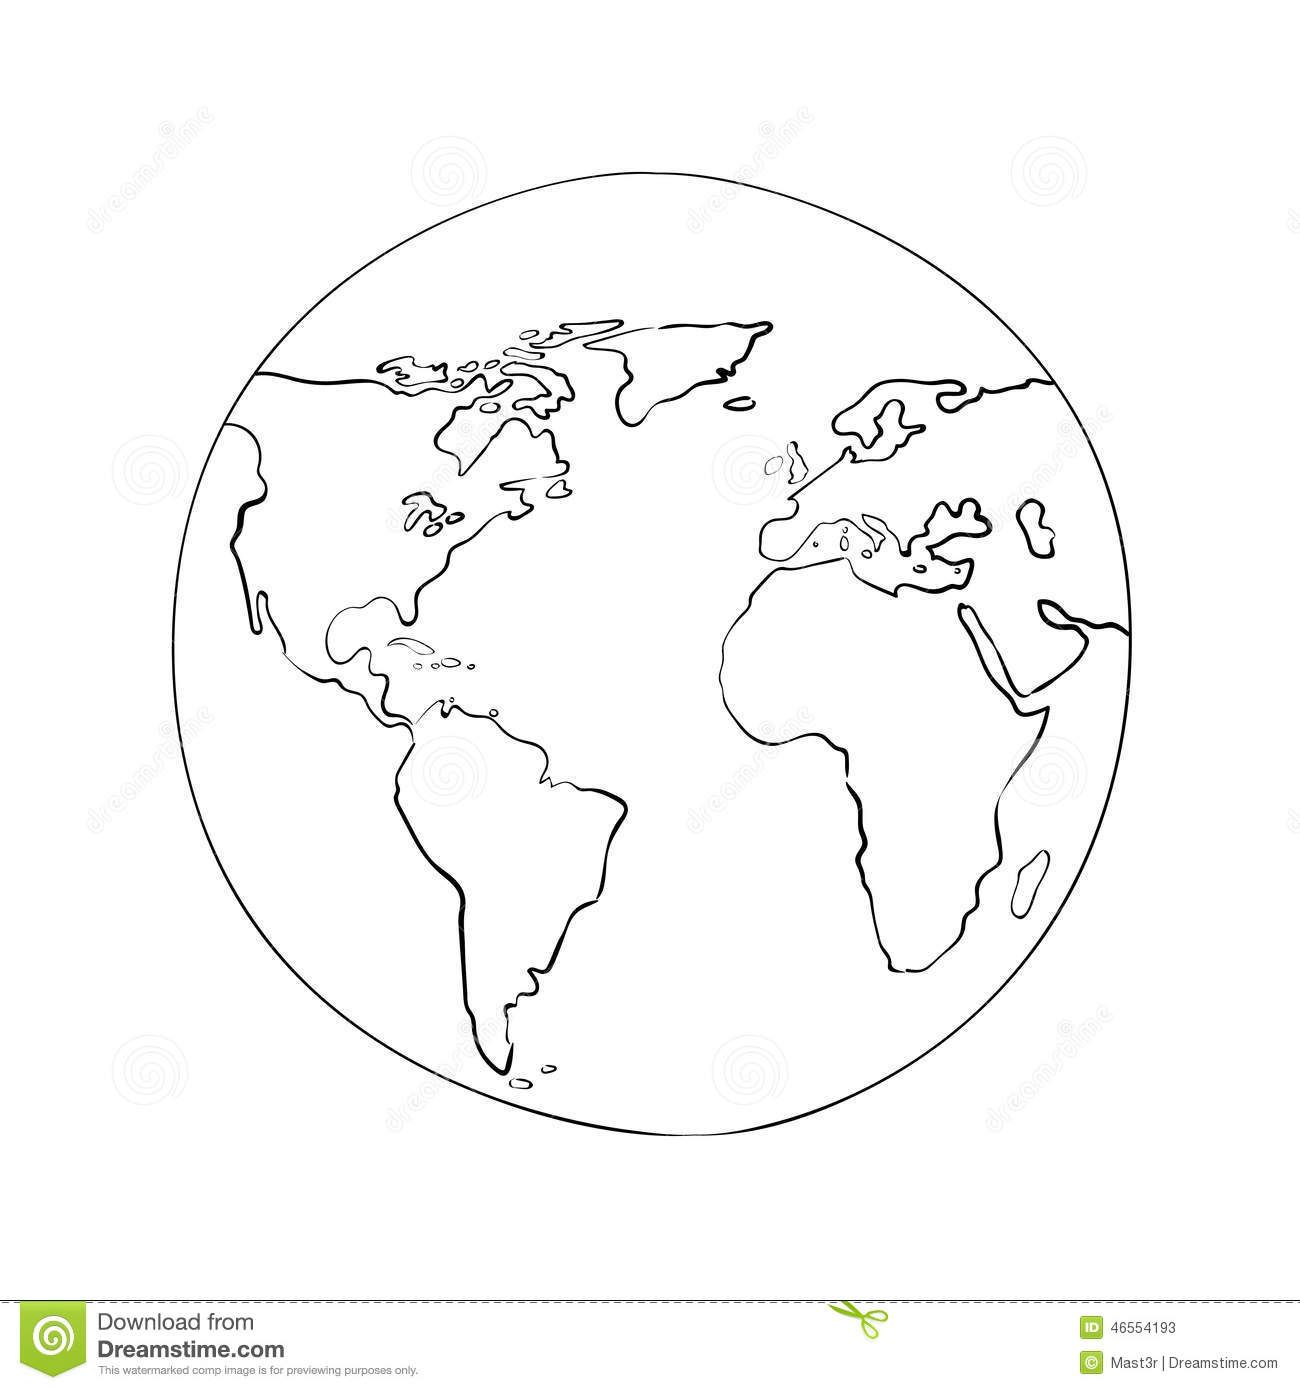 sketch globe world map black vector illustration download from over 49 million high quality stock photos images vectors sign up for free today